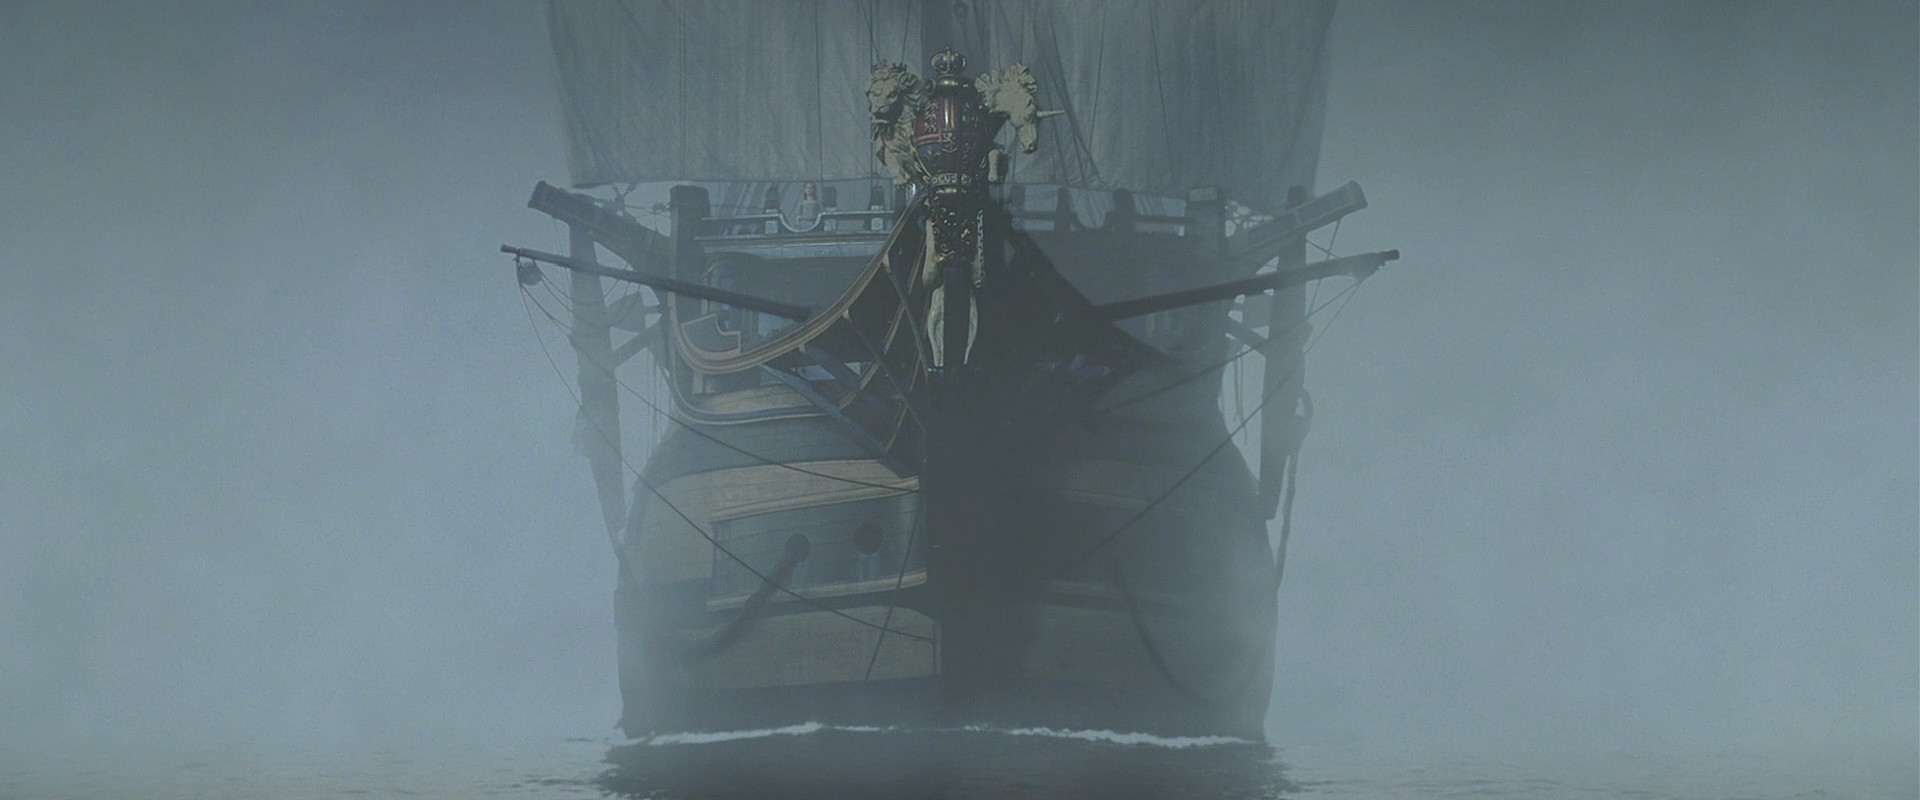 The Curse Of The Black Pearl Minute 1 Pirate S Life For